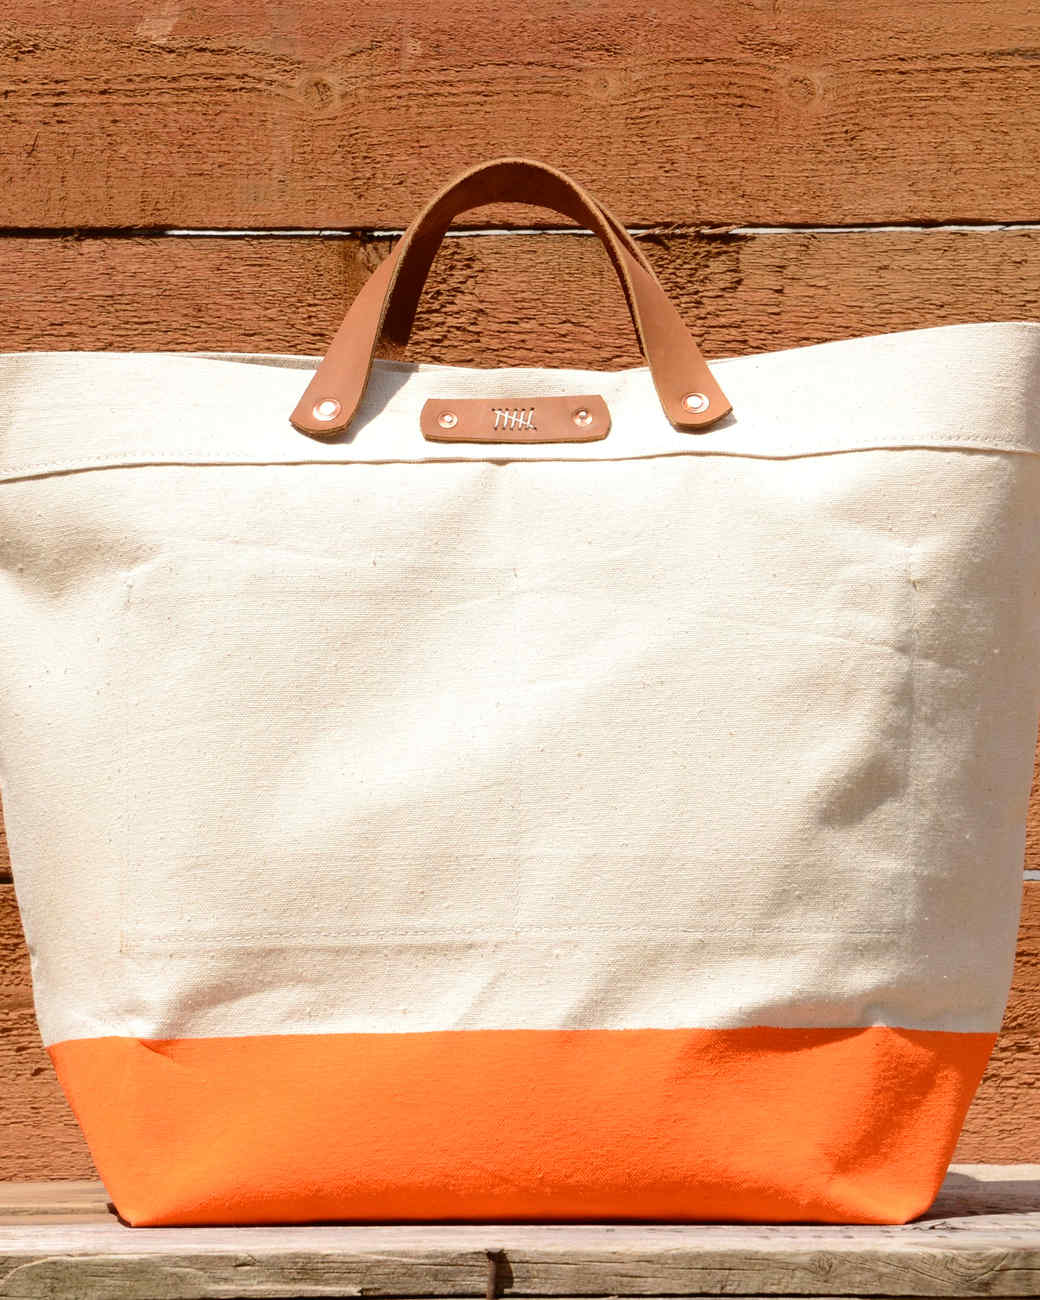 am-dustbowl-tote-1013.jpg